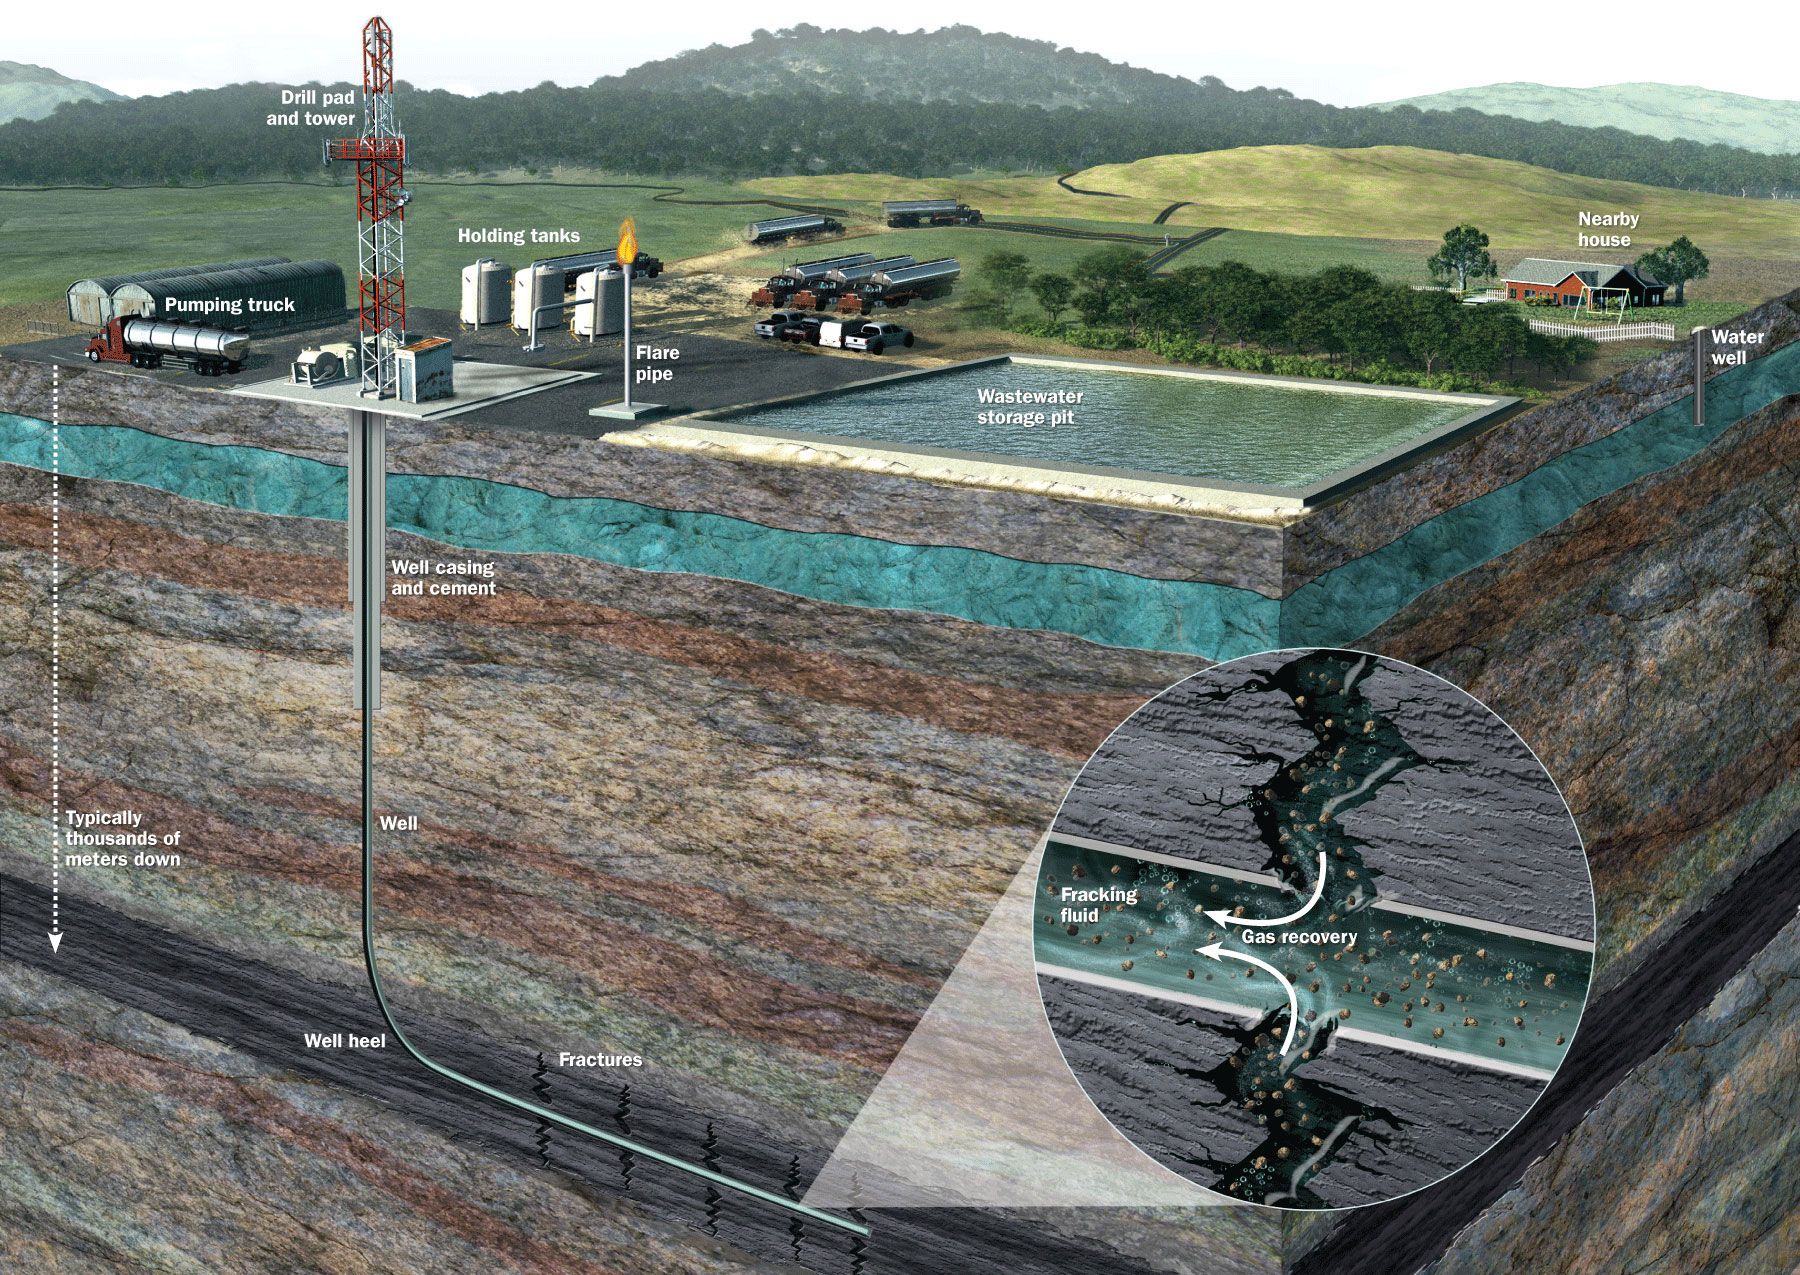 Diagram showing that fracking used proven components.